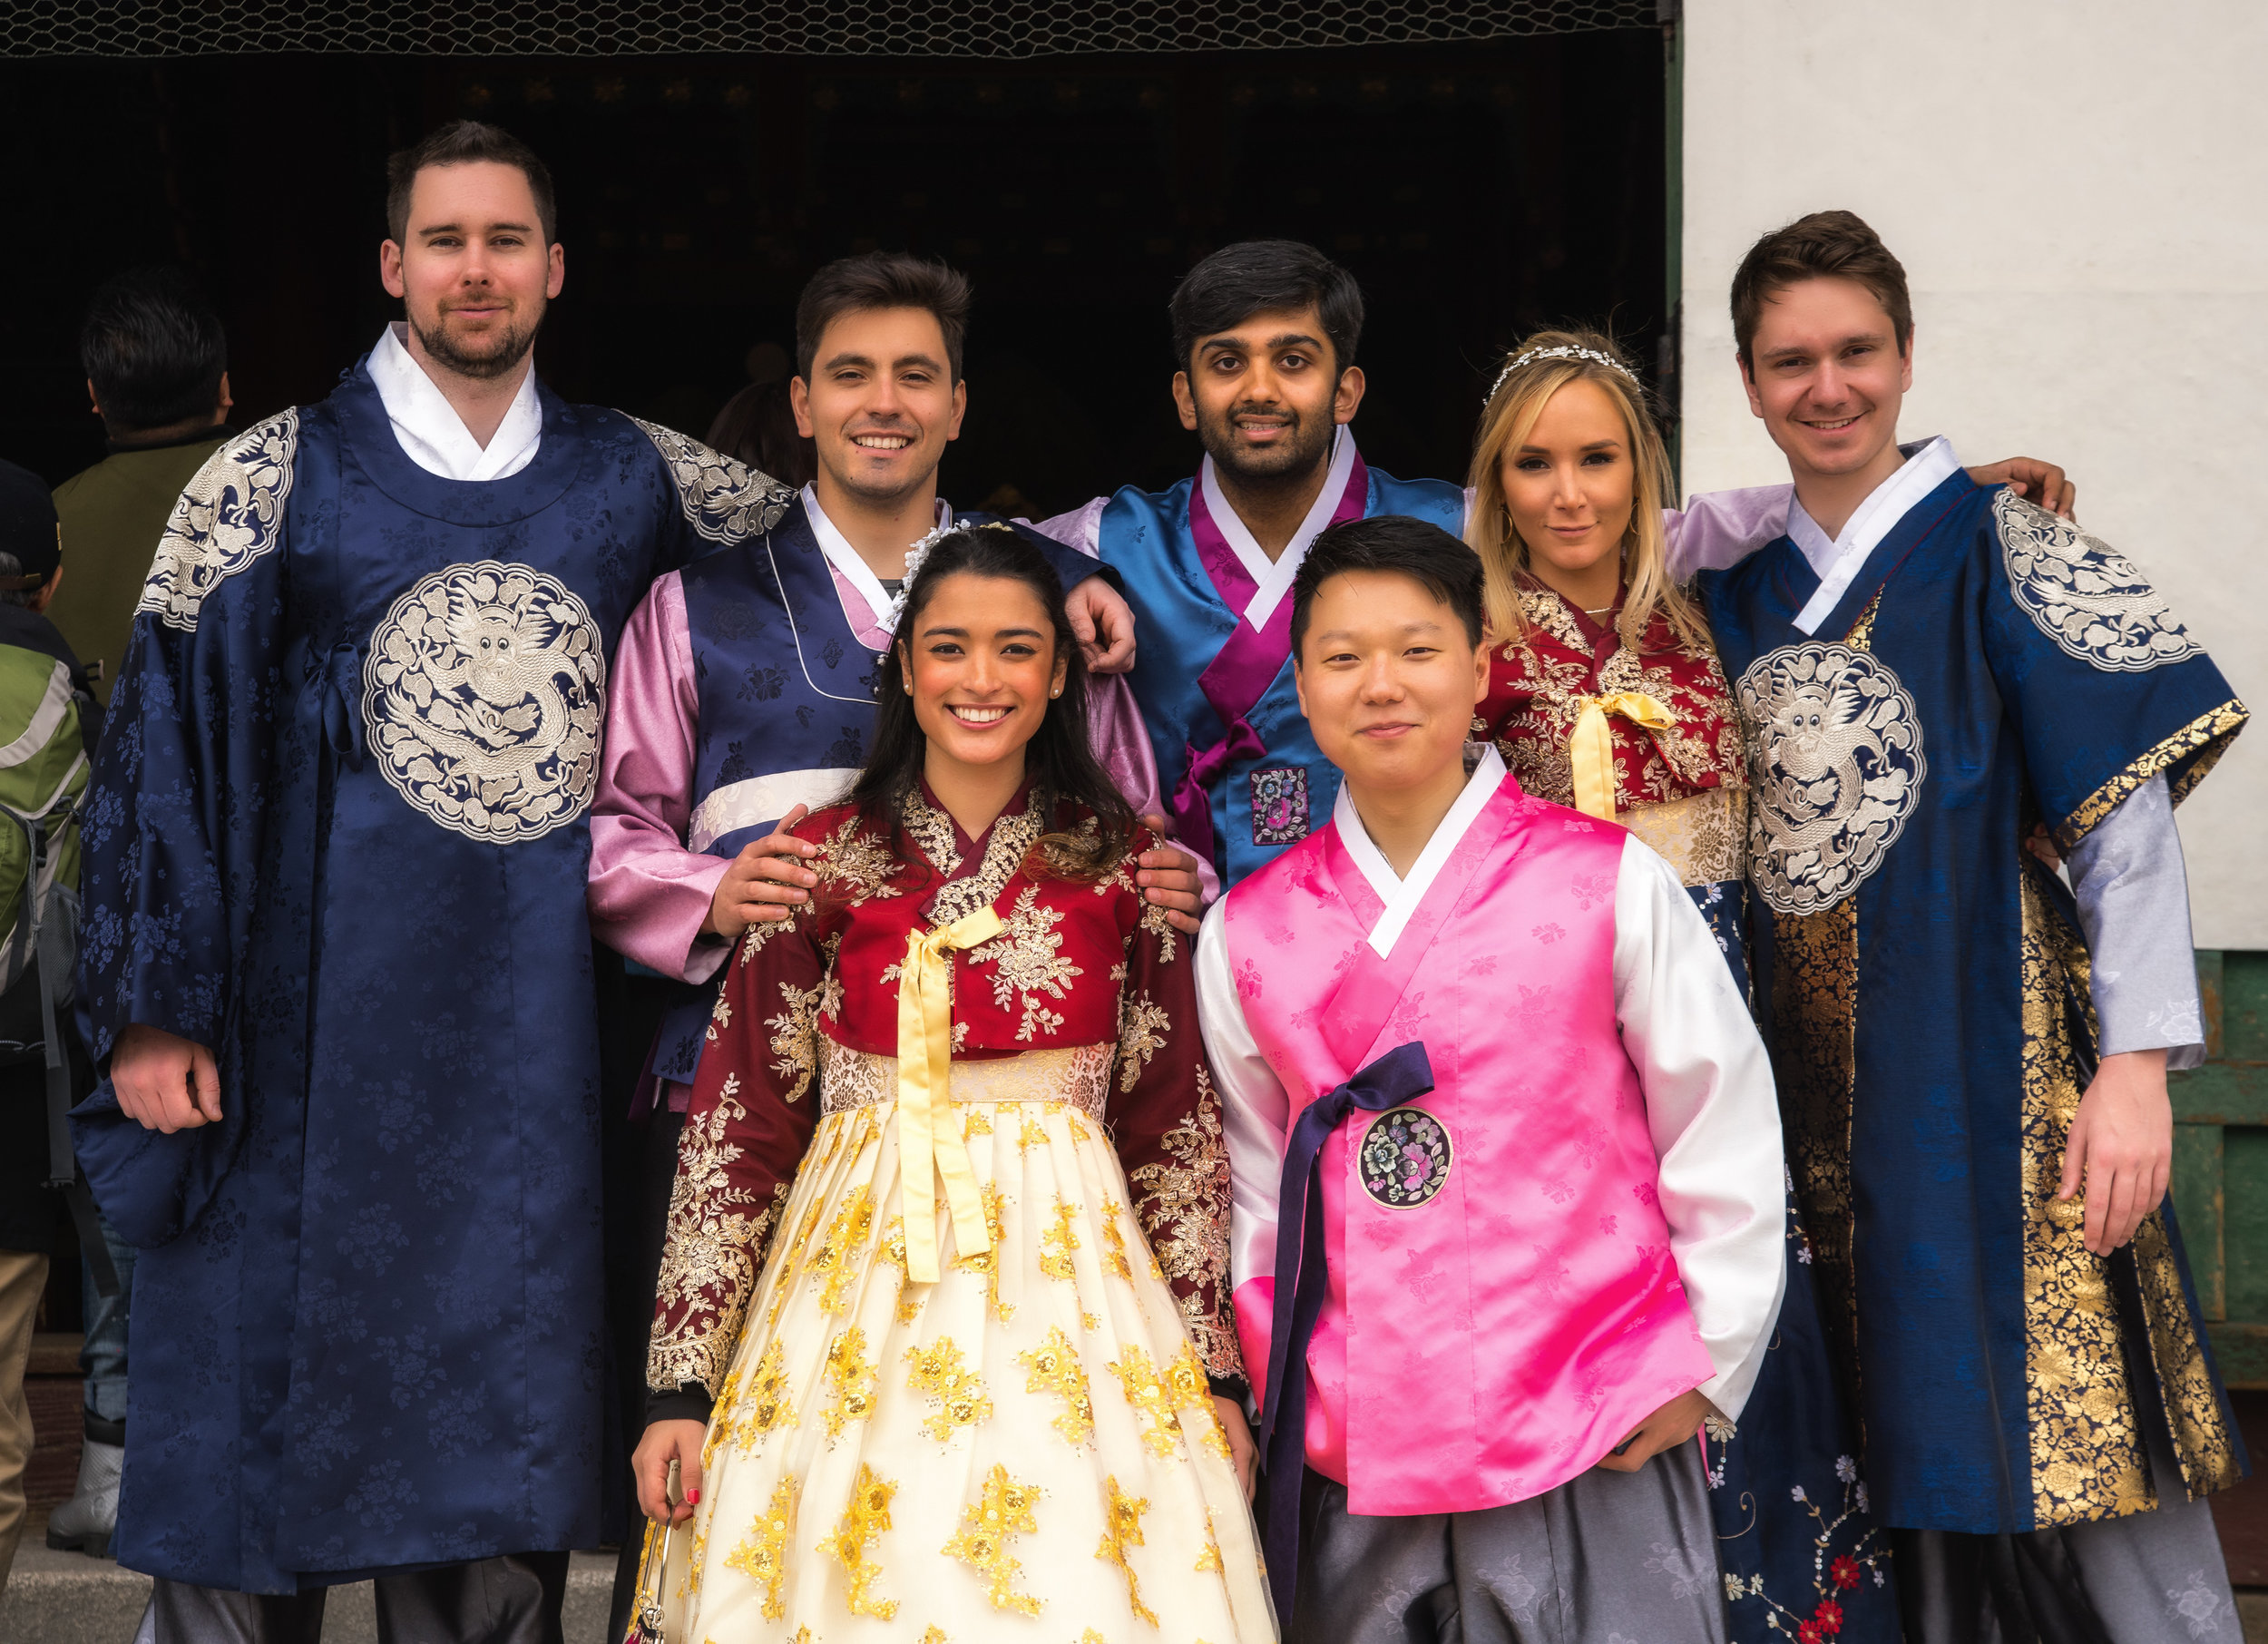 The group wearing Hanbok at the Gyeongbokgung Palace in Seoul